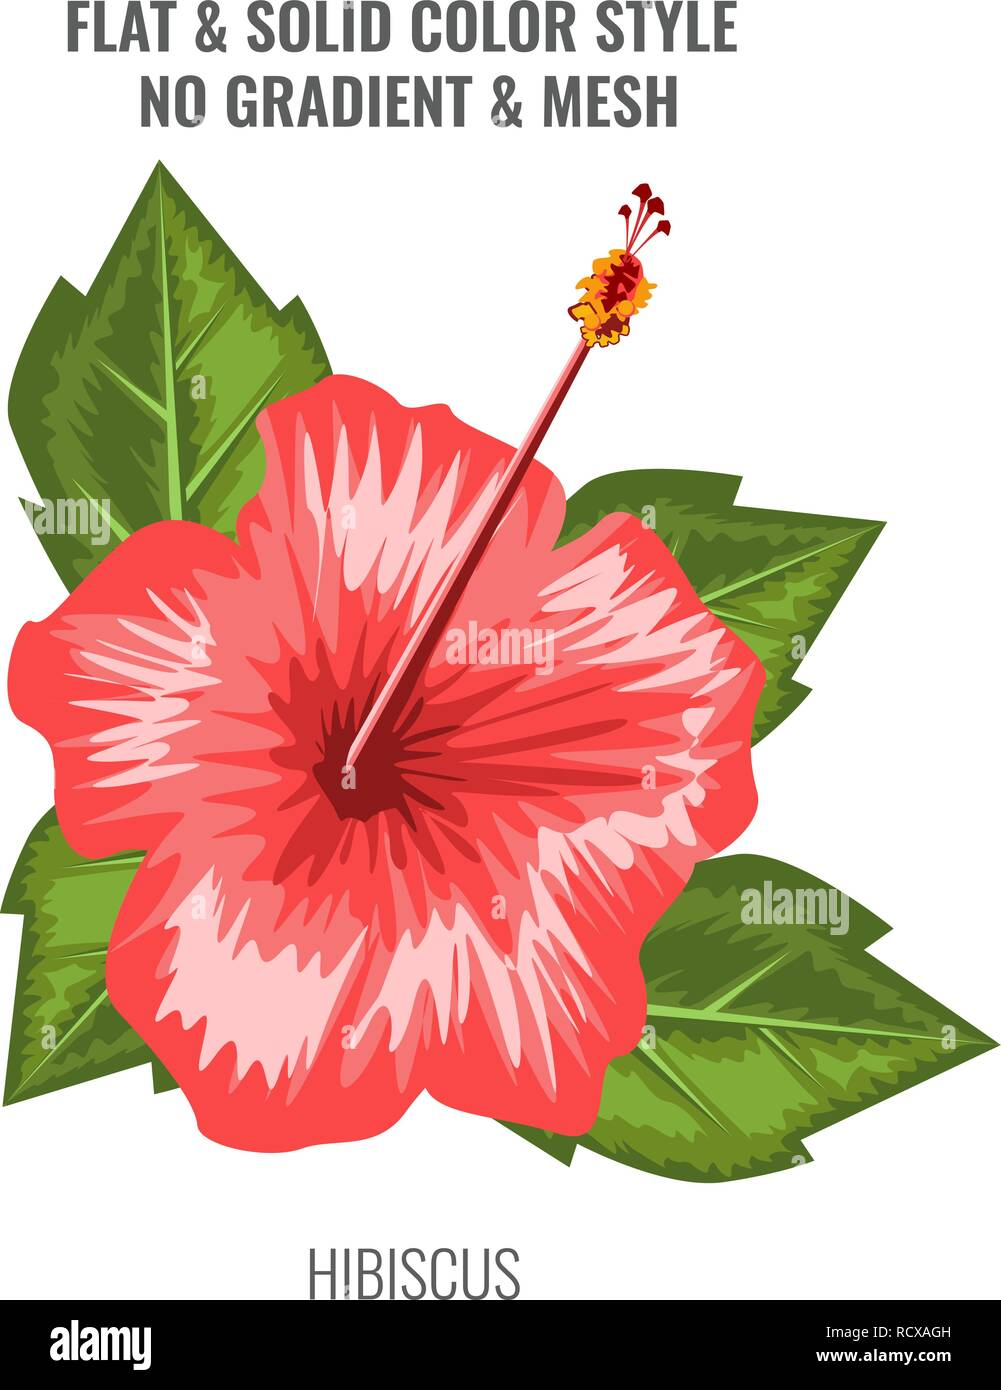 Hybiscus Flower Stock Photos Hybiscus Flower Stock Images Page 3